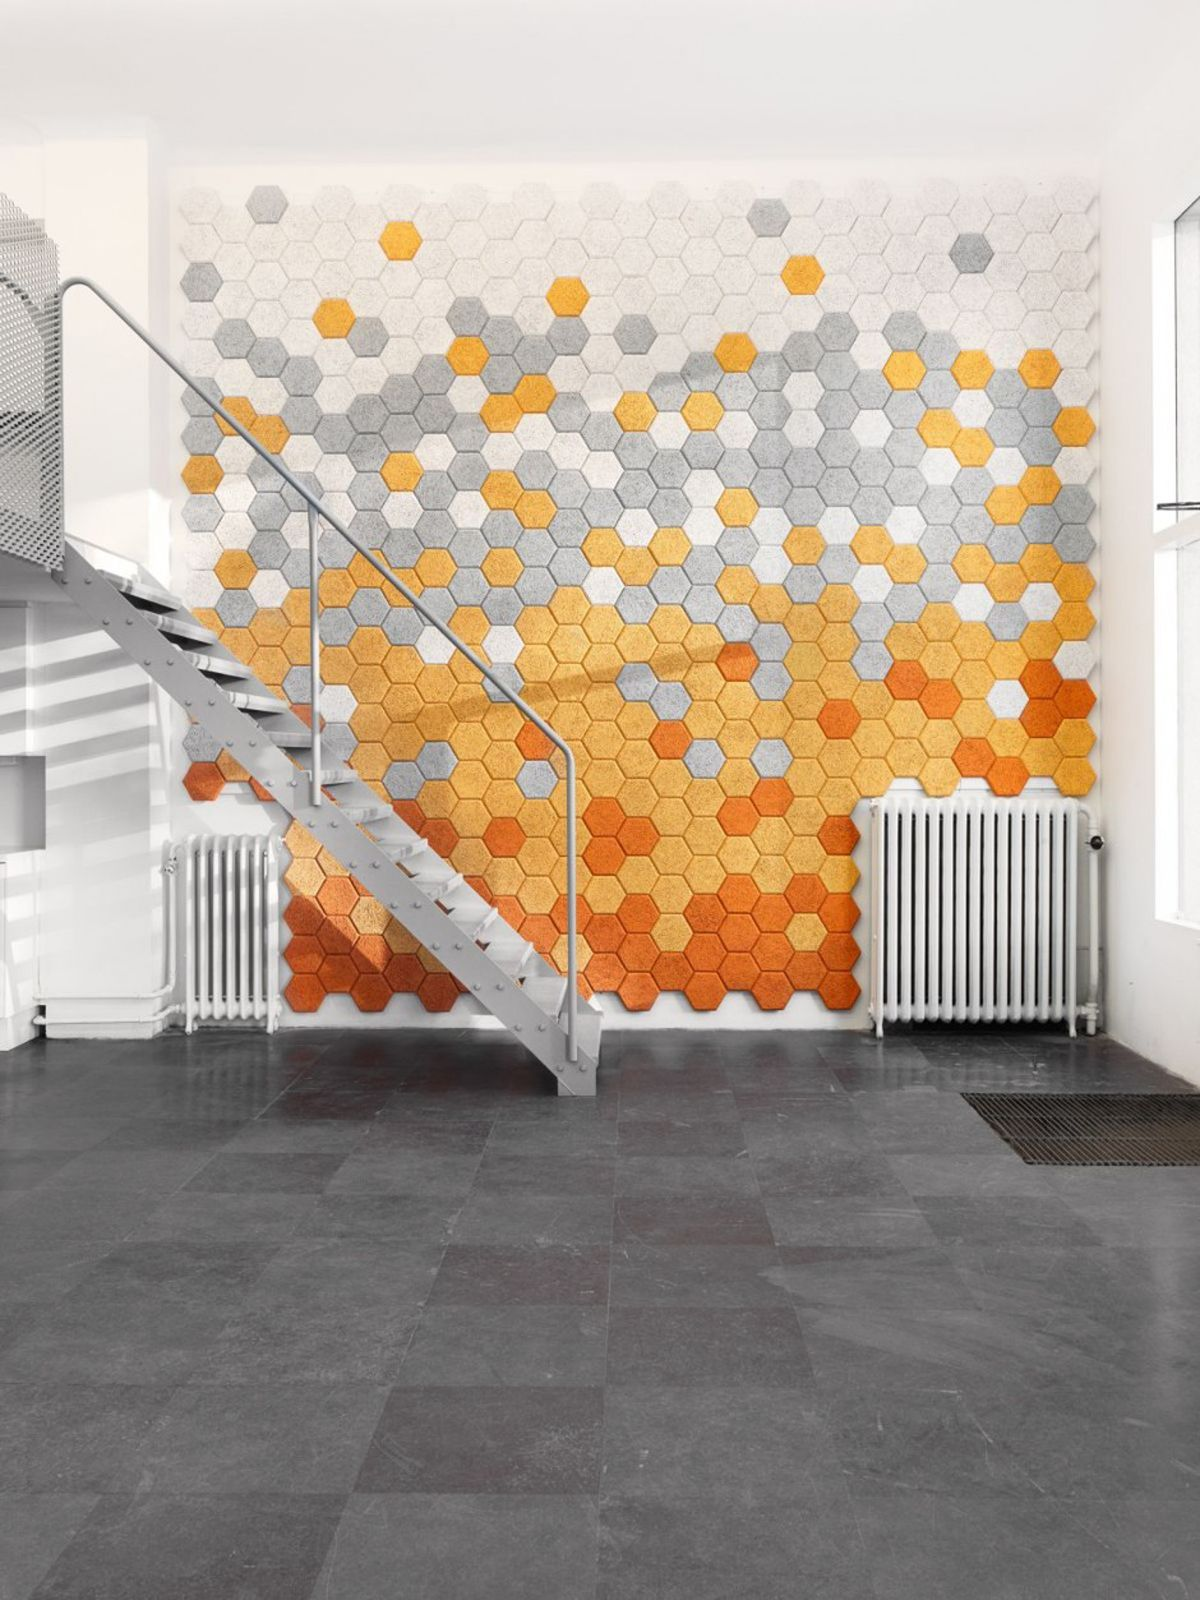 hexagon design of contemporary wall mounted accessoriesjpg 1200